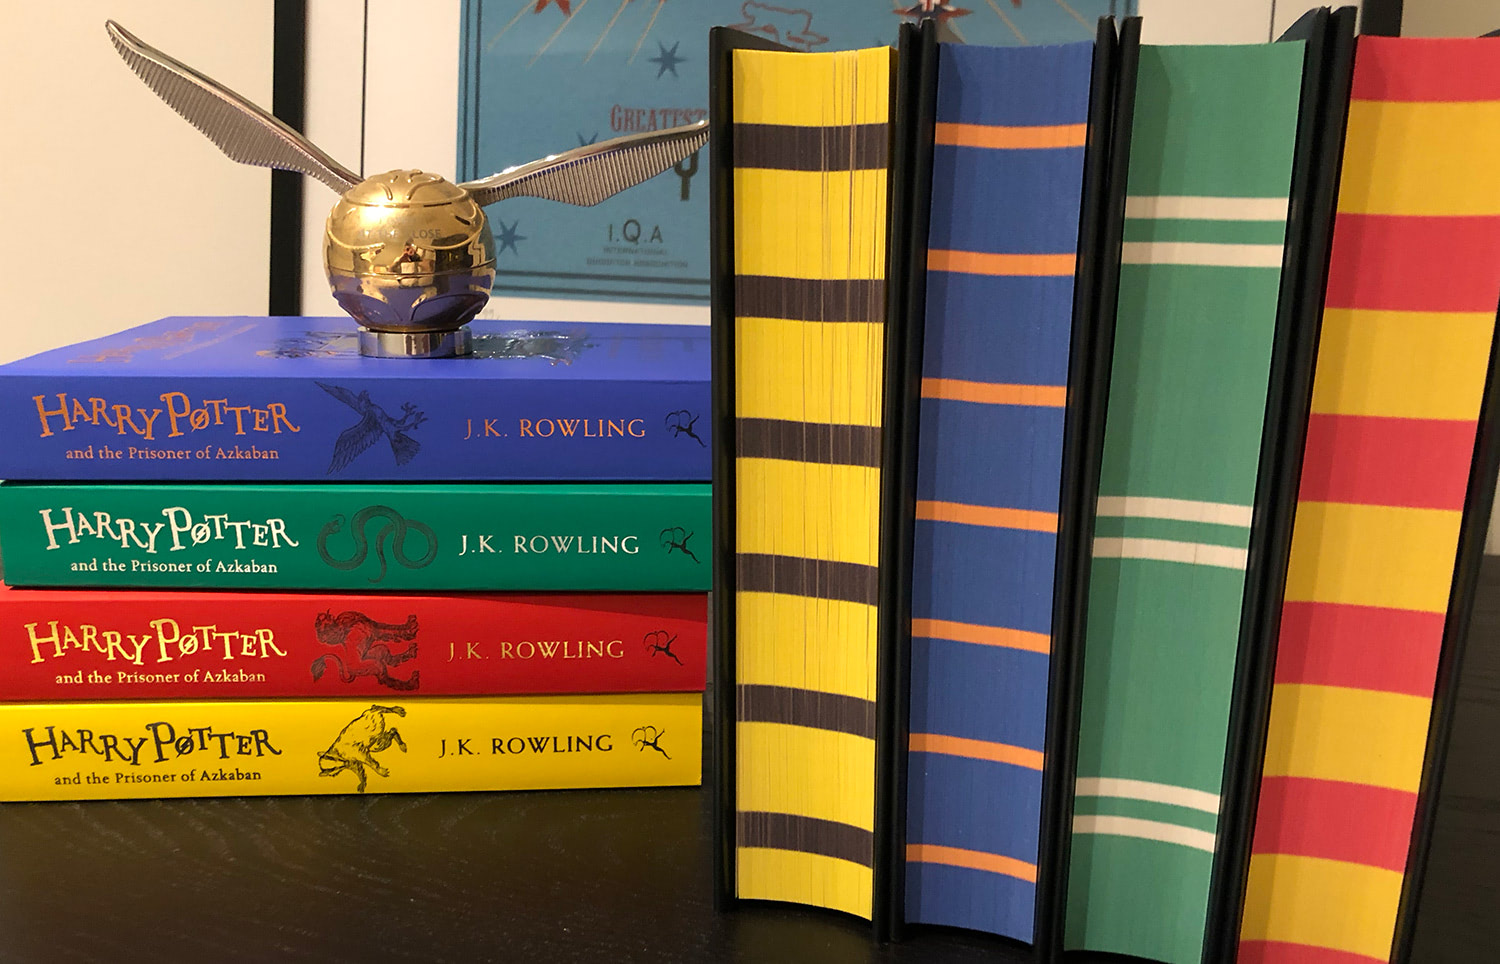 'Prisoner of Azkaban' house editions